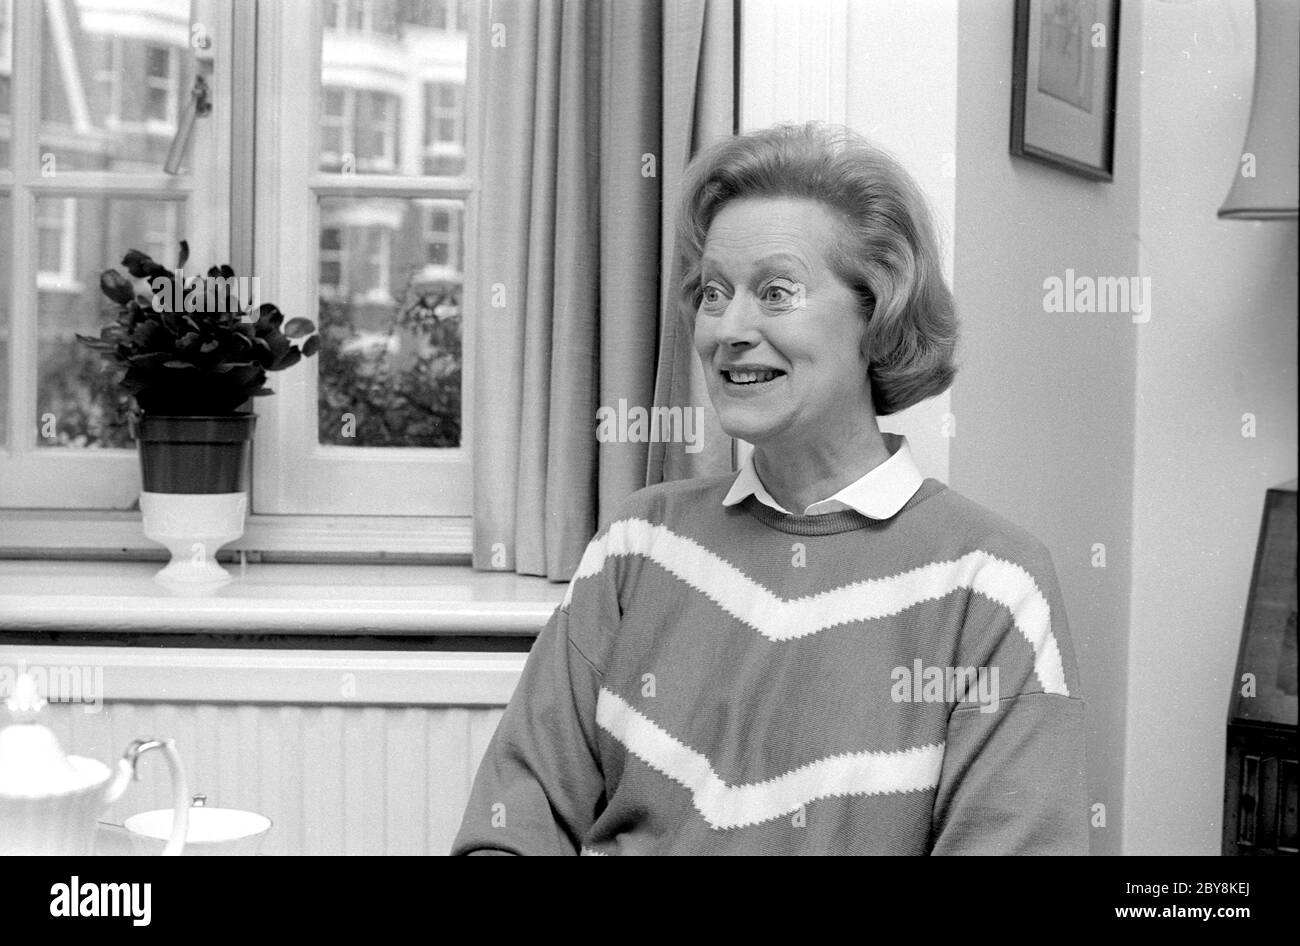 Josephine Tewson At Home In 1988 Stock Photo Alamy She is best known for her large roles in british television. https www alamy com josephine tewson at home in 1988 image360993994 html